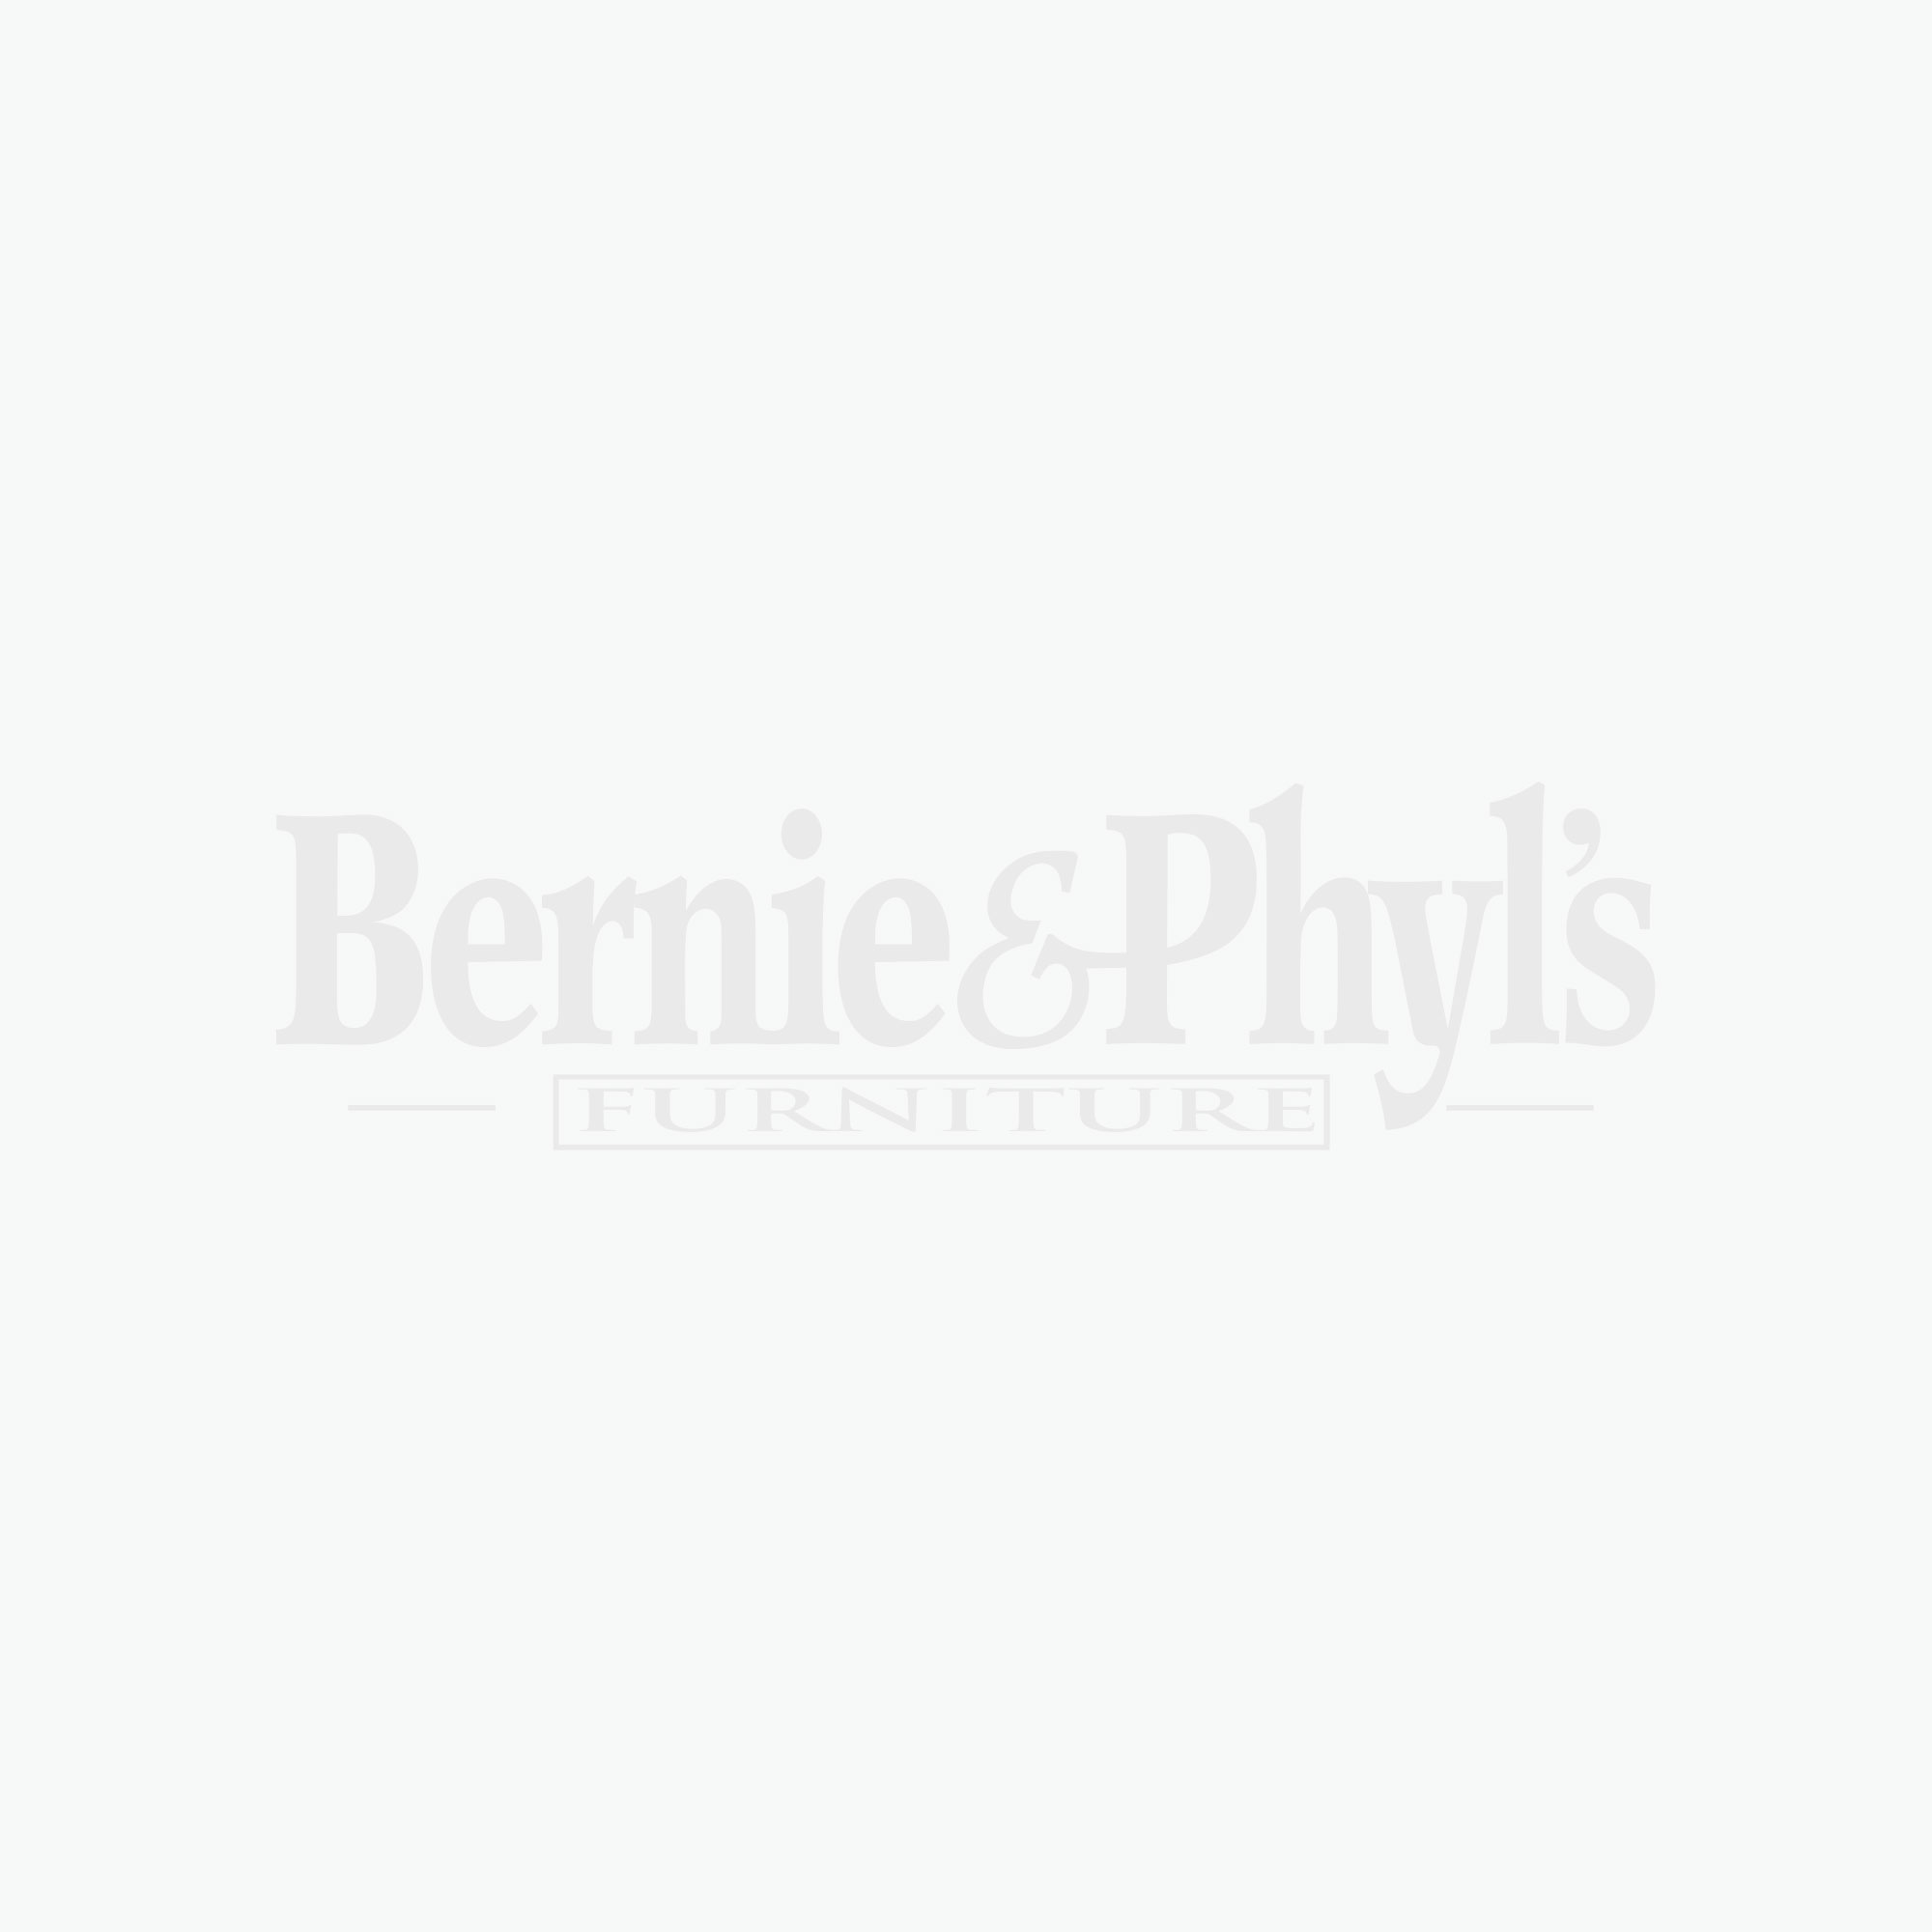 Berringer Large Dining Room Bench - Rustic Brown - (Set of 1) - D199-00 by Ashley Furniture Signature Design